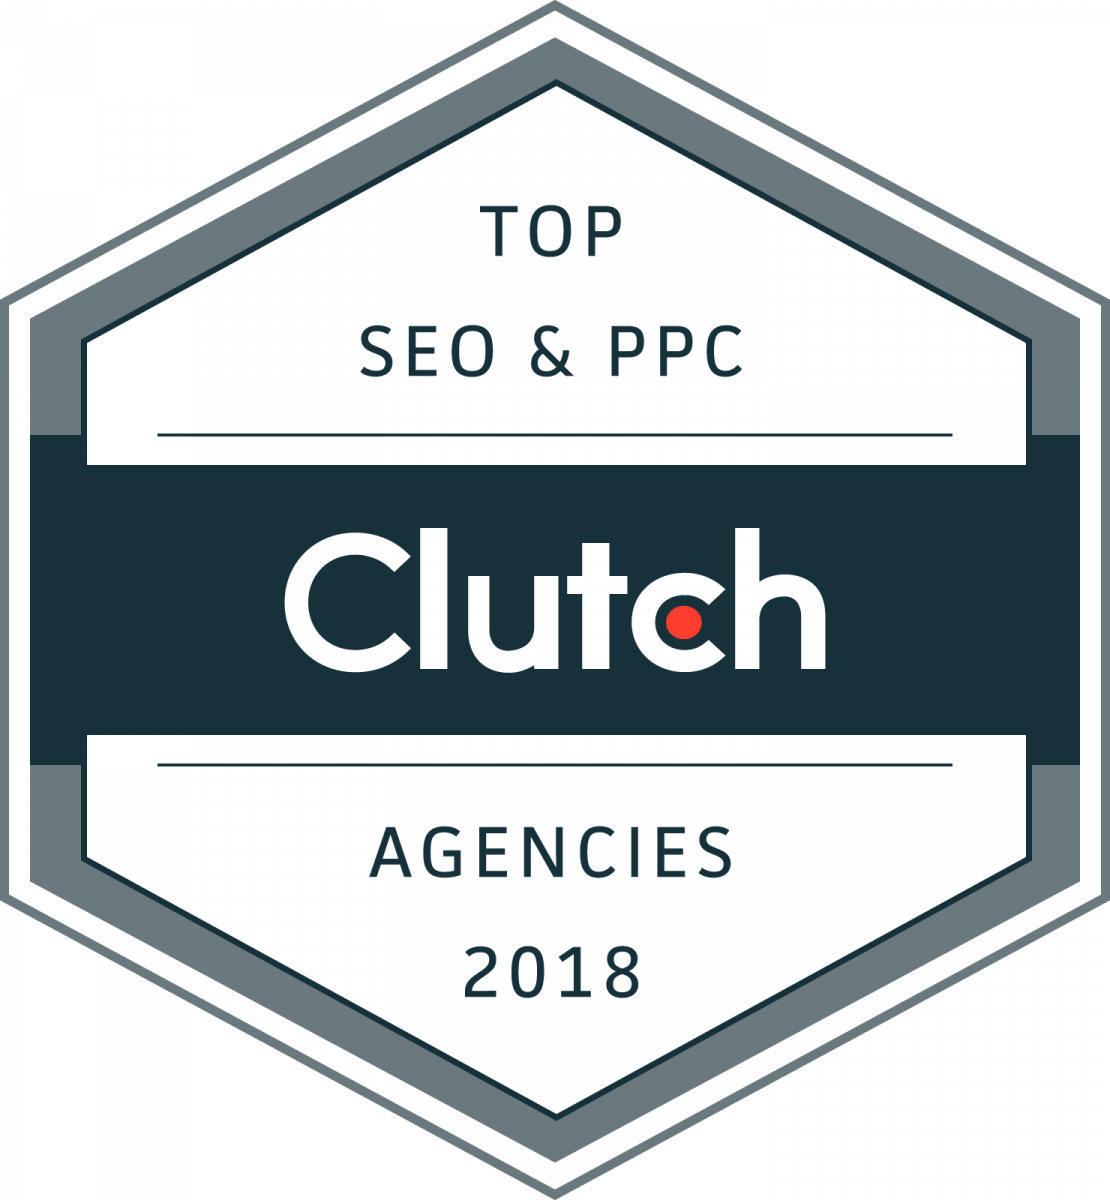 Certified Top Atlanta SEO & PPC Agency